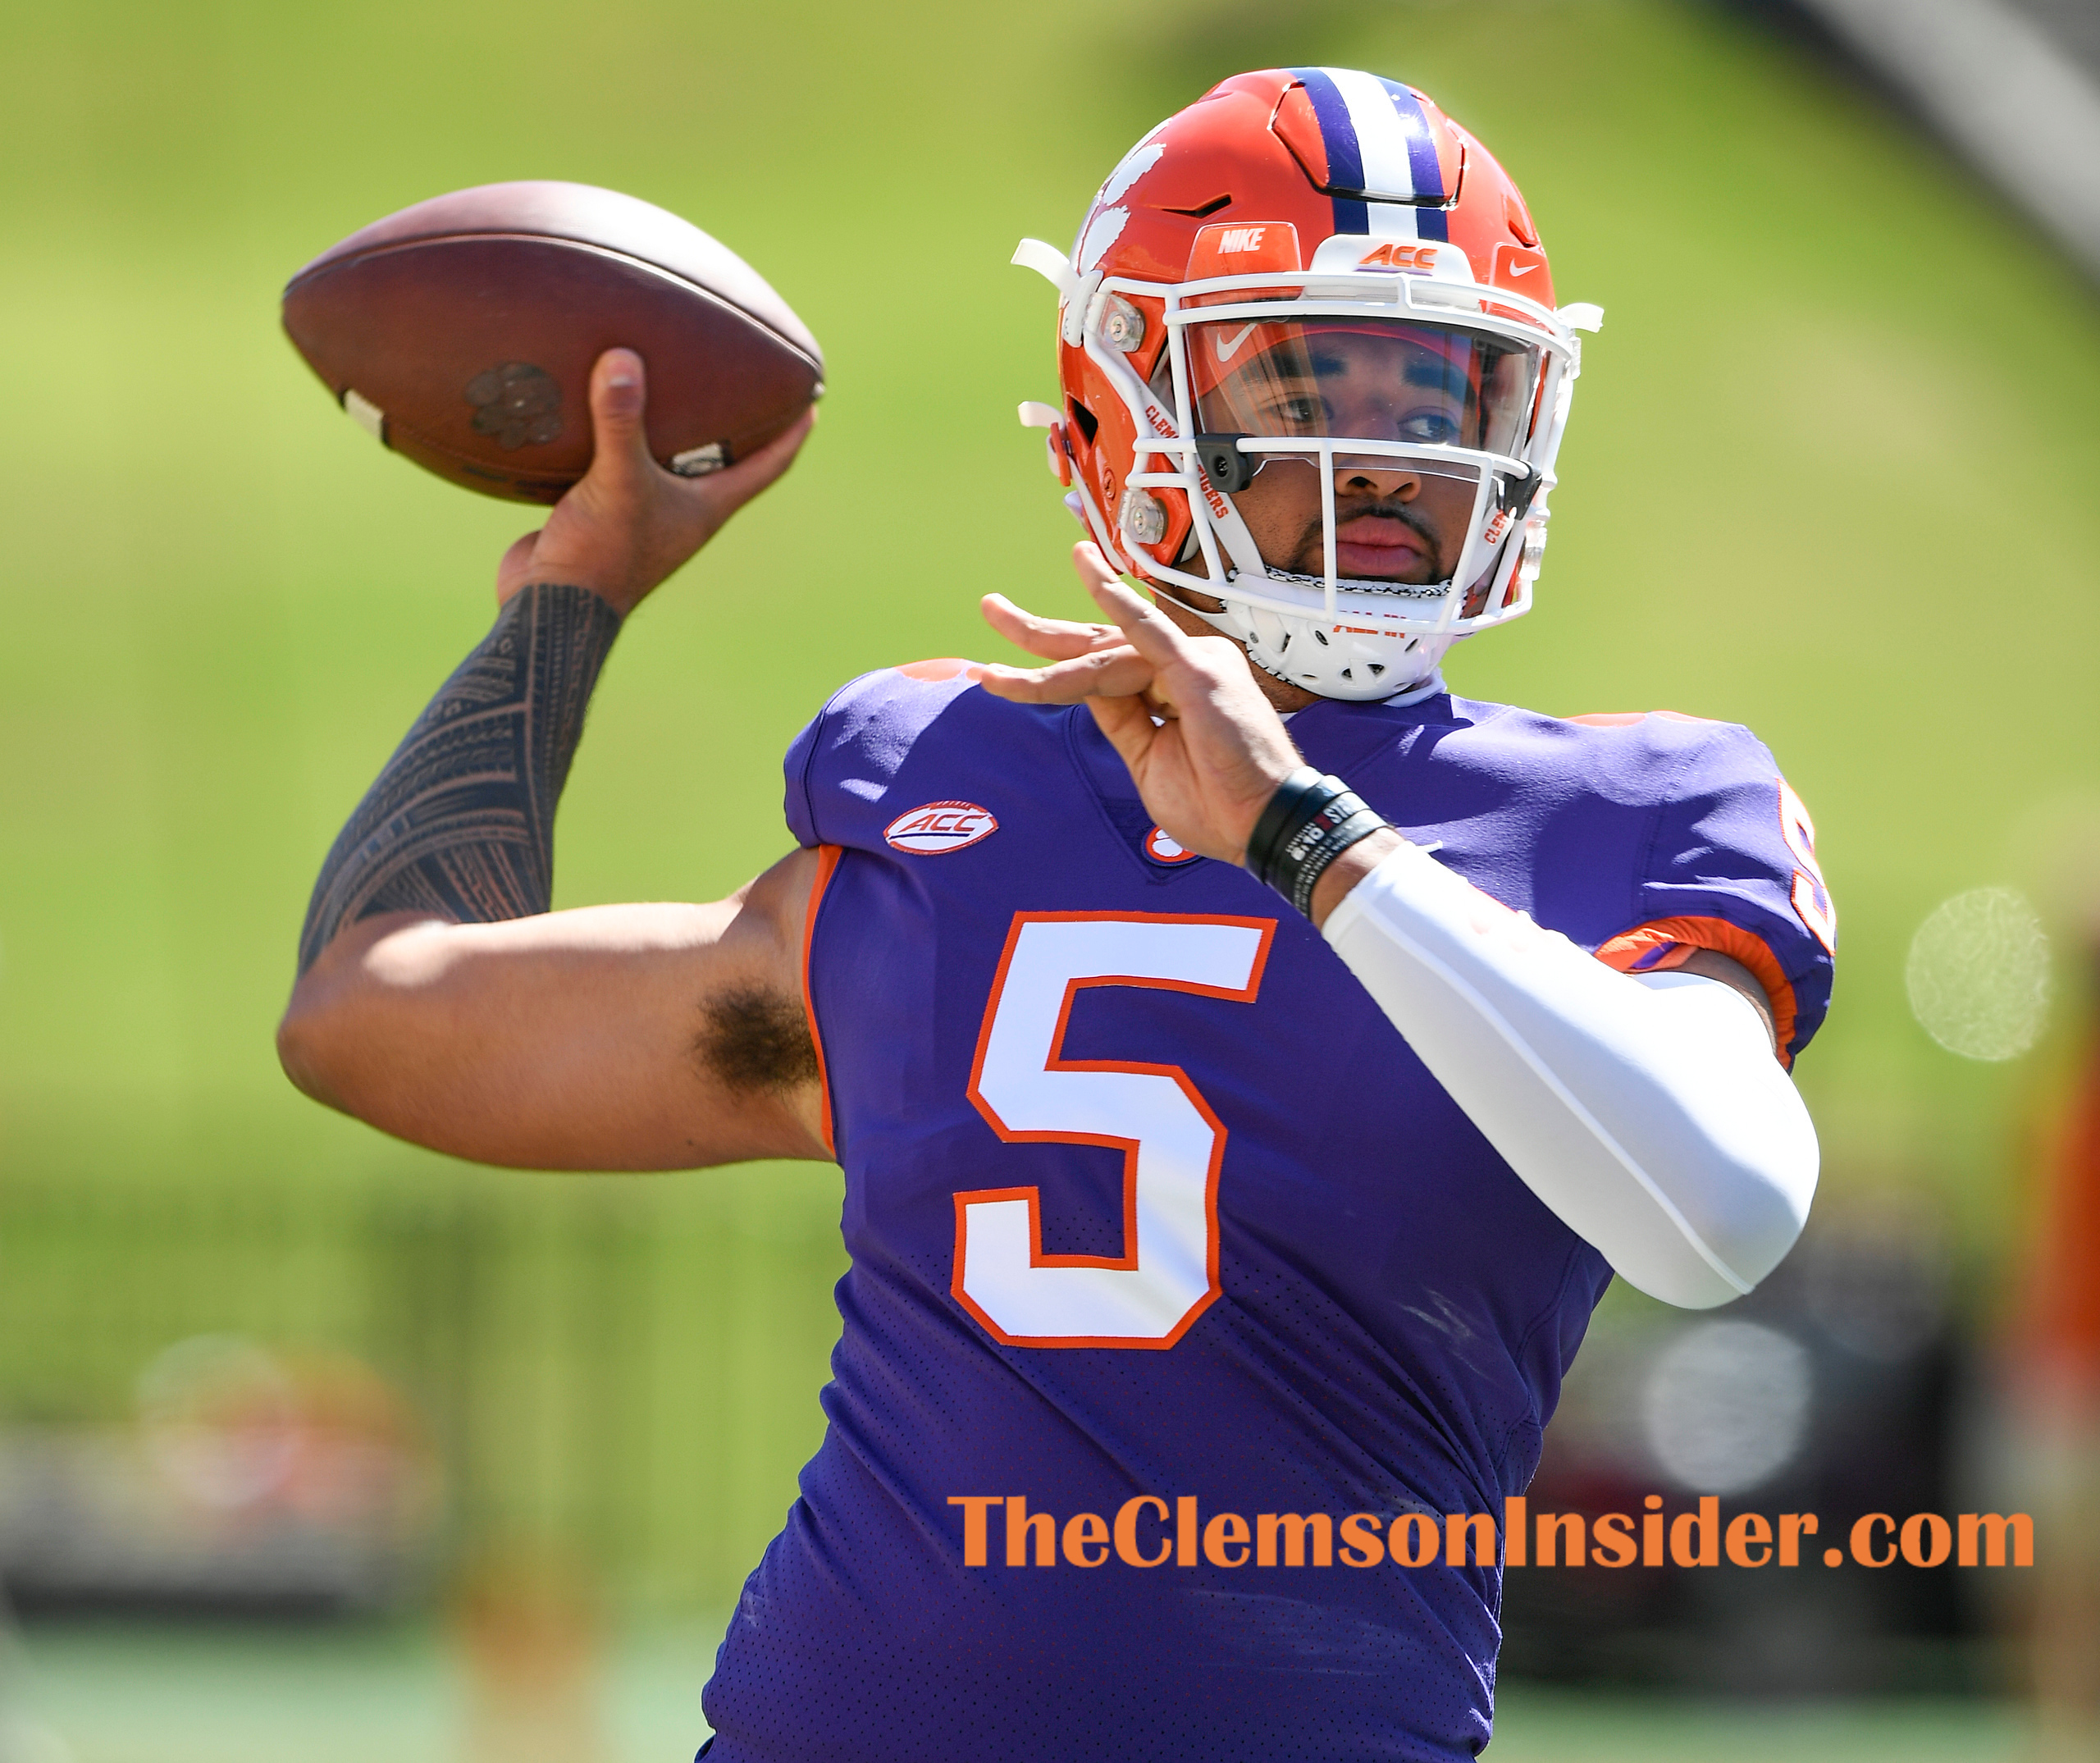 quarterback D.J. Uiagalelei (5) during pregame of the Orange and White spring game Saturday, April 3, 2021 at Clemson's Memorial Stadium. Bart Boatwright/The Clemson Insider